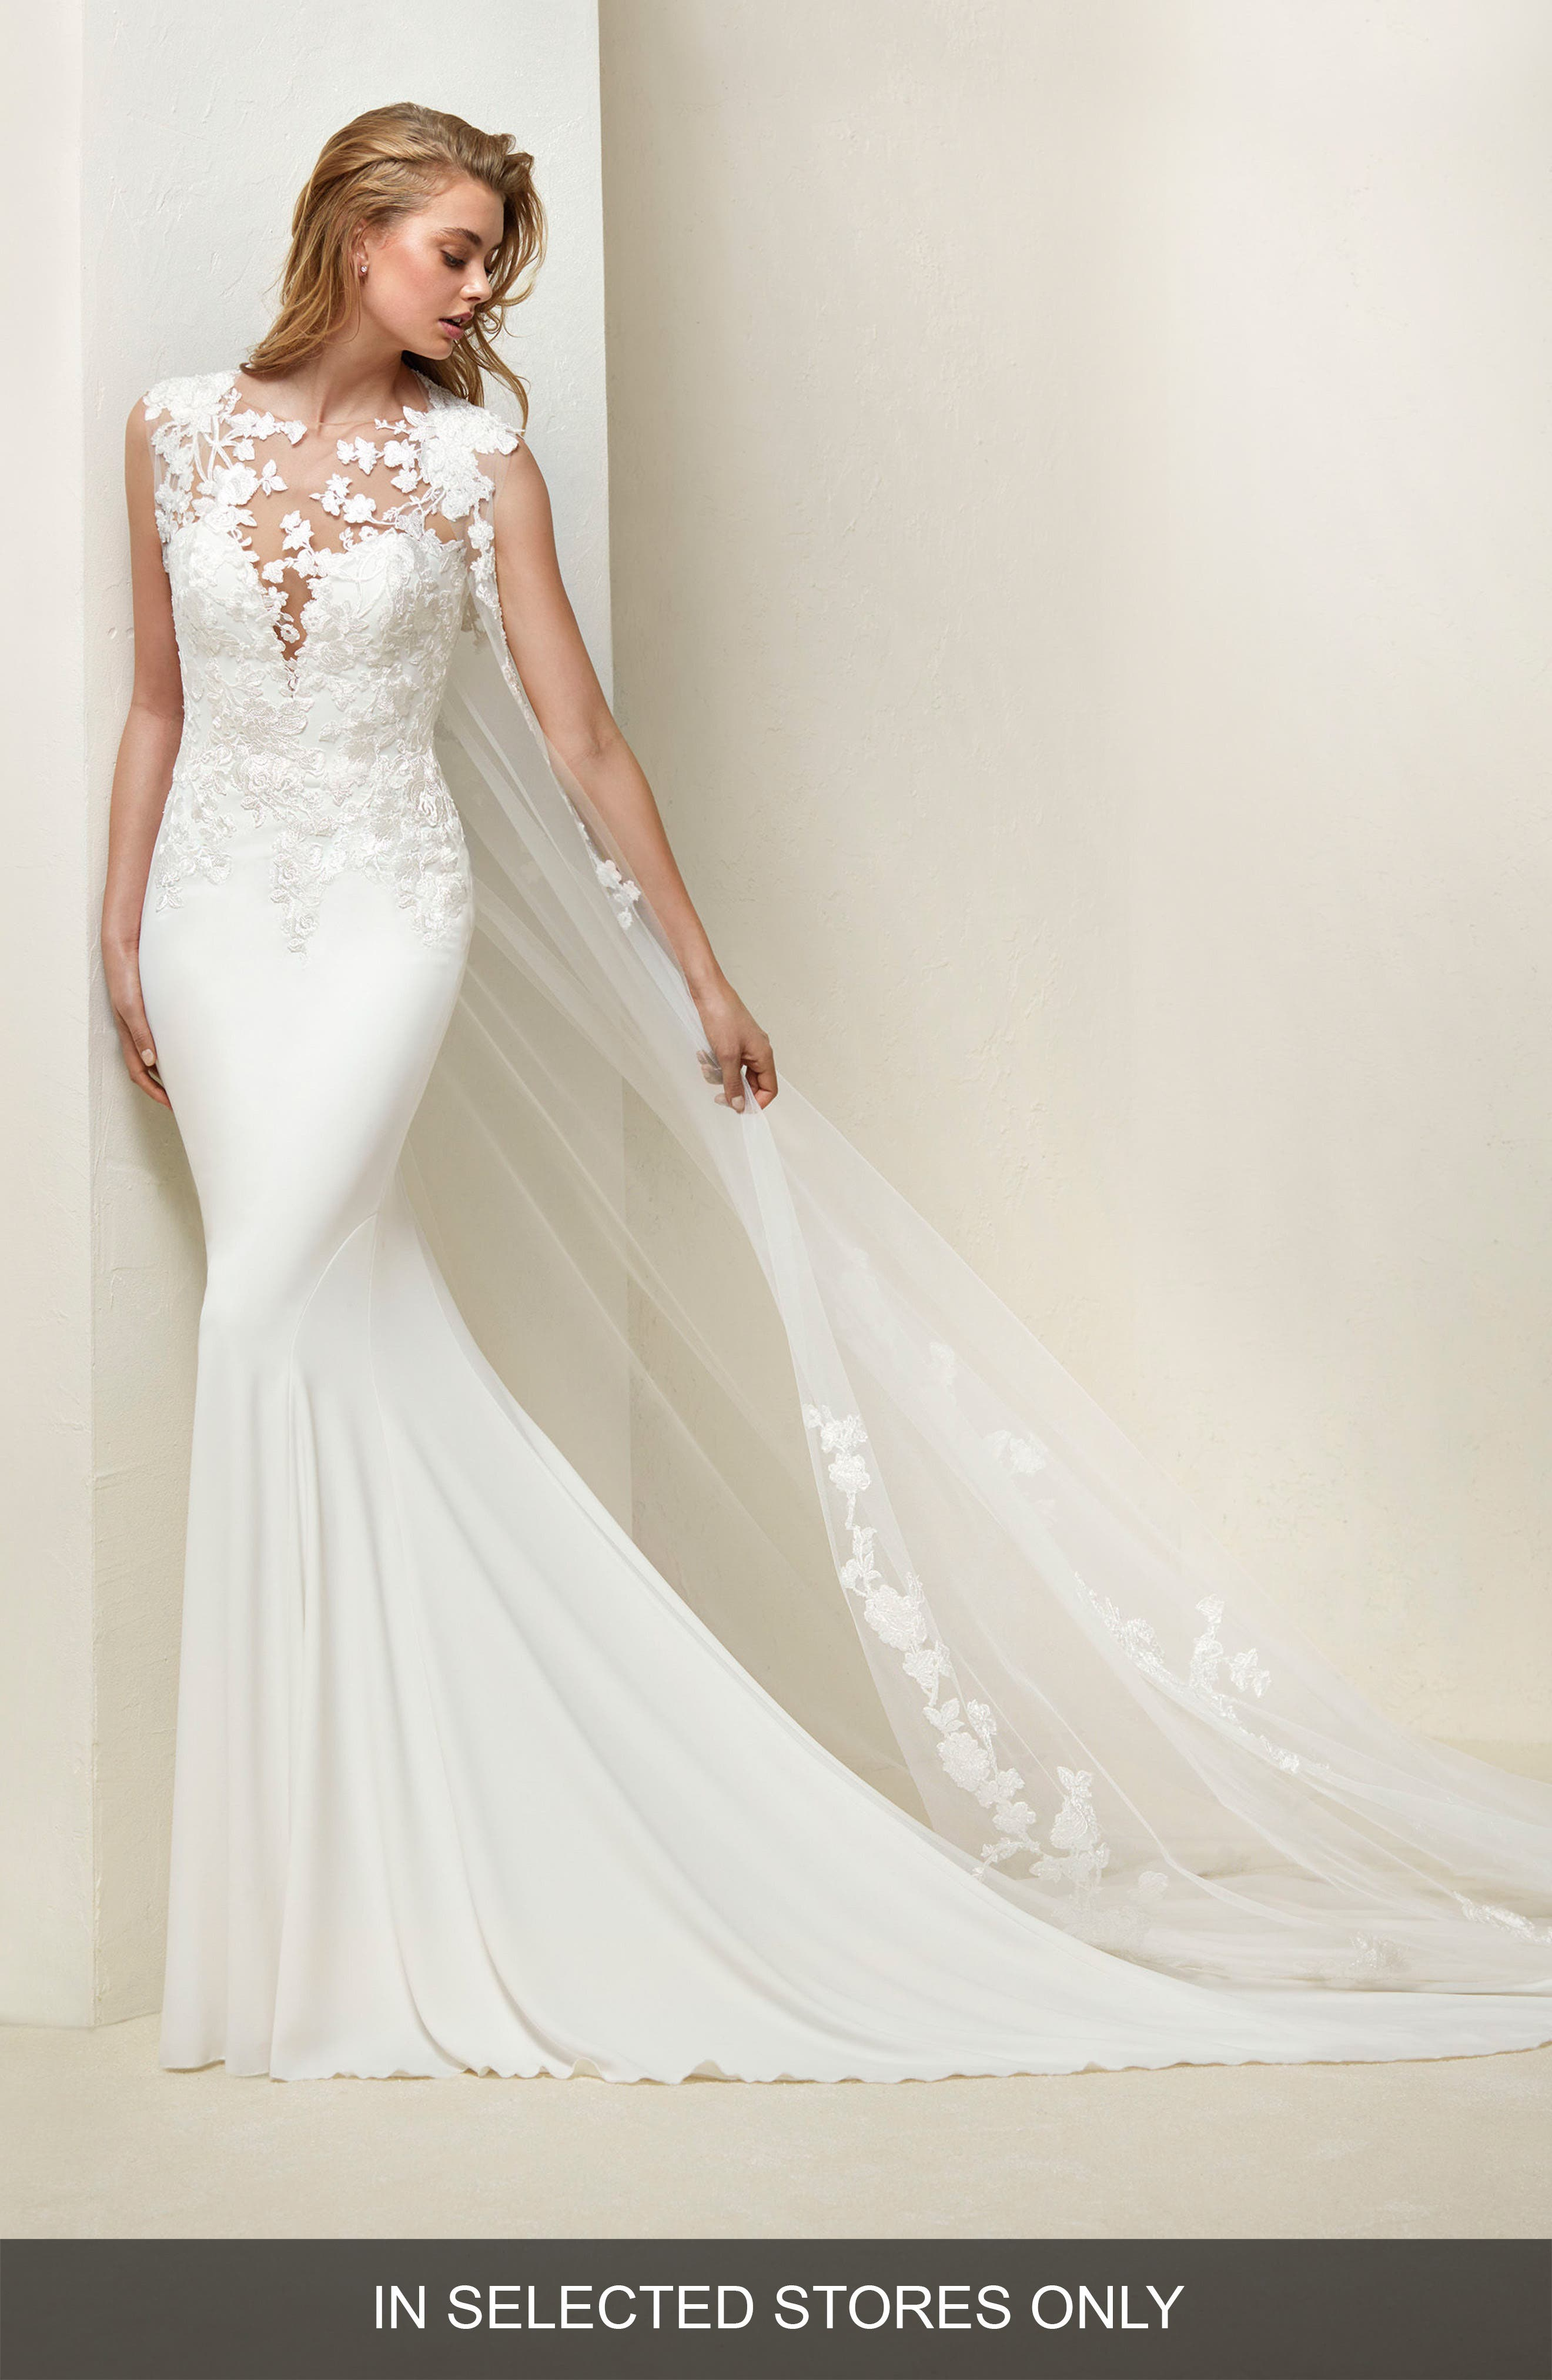 Drail Tulle & Crepe Mermaid Gown,                         Main,                         color, OFF WHITE